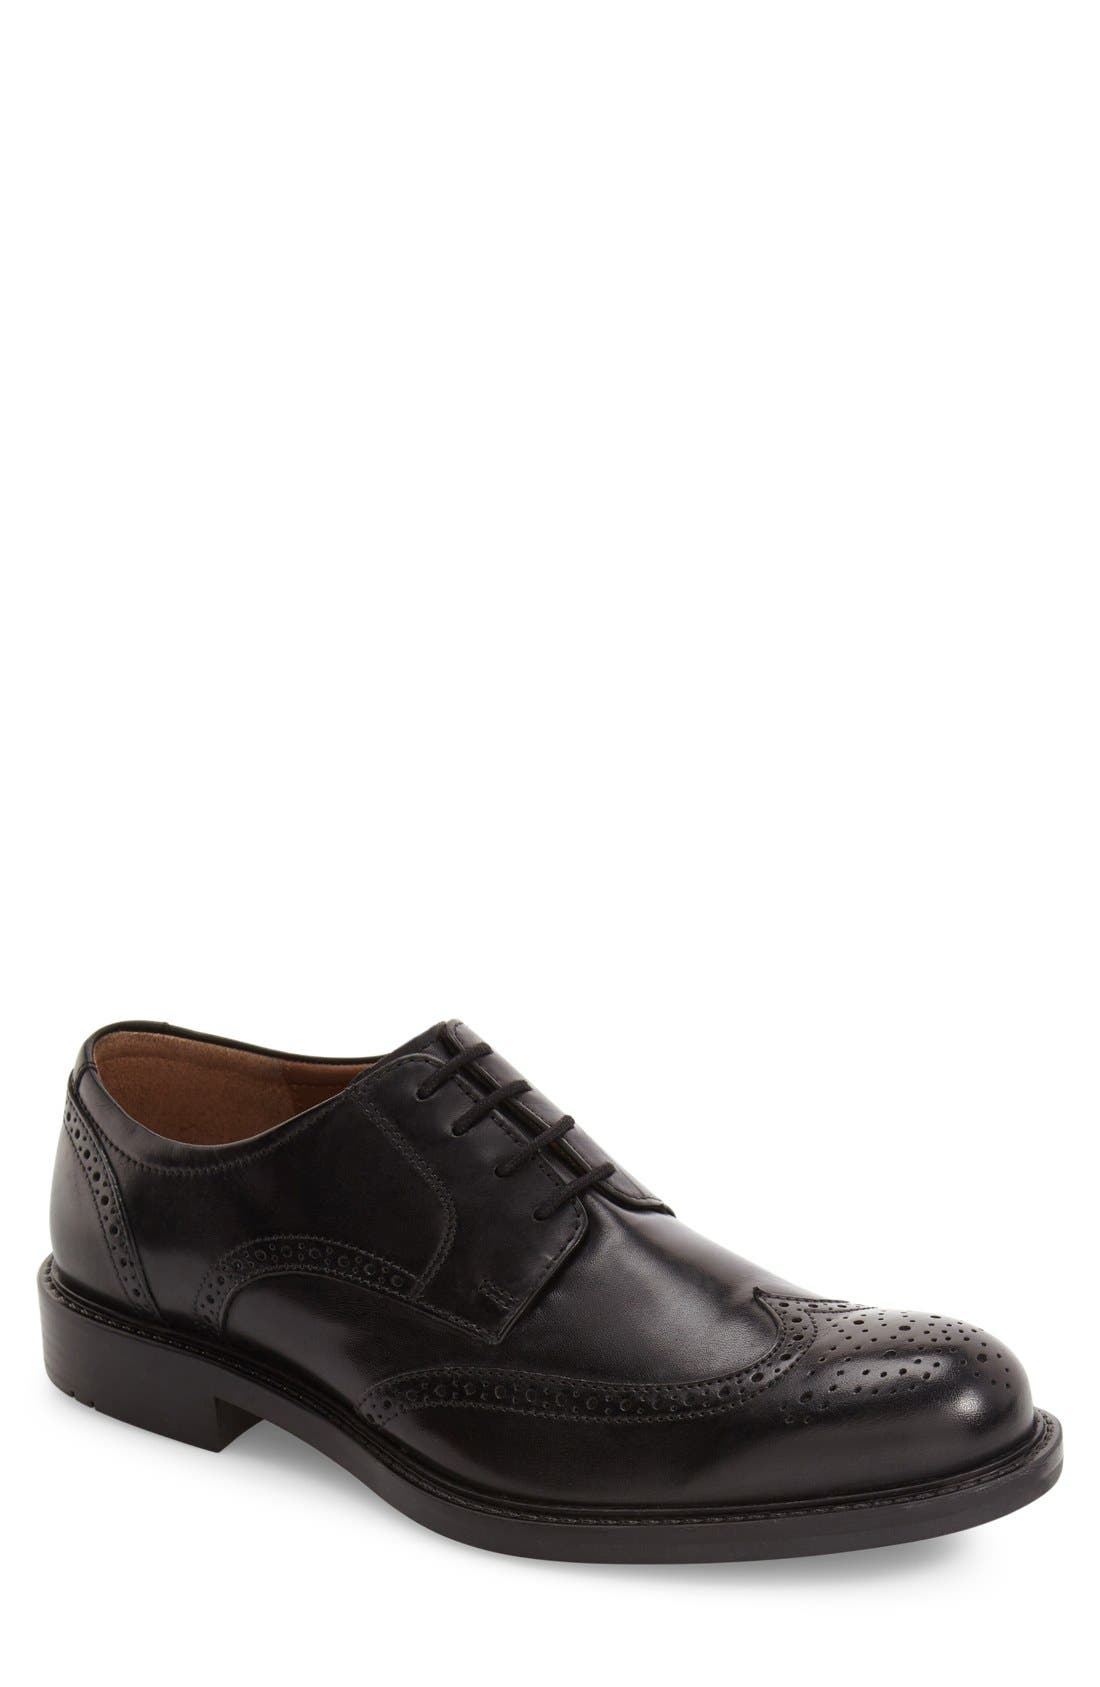 Tabor Wingtip,                             Main thumbnail 1, color,                             BLACK LEATHER